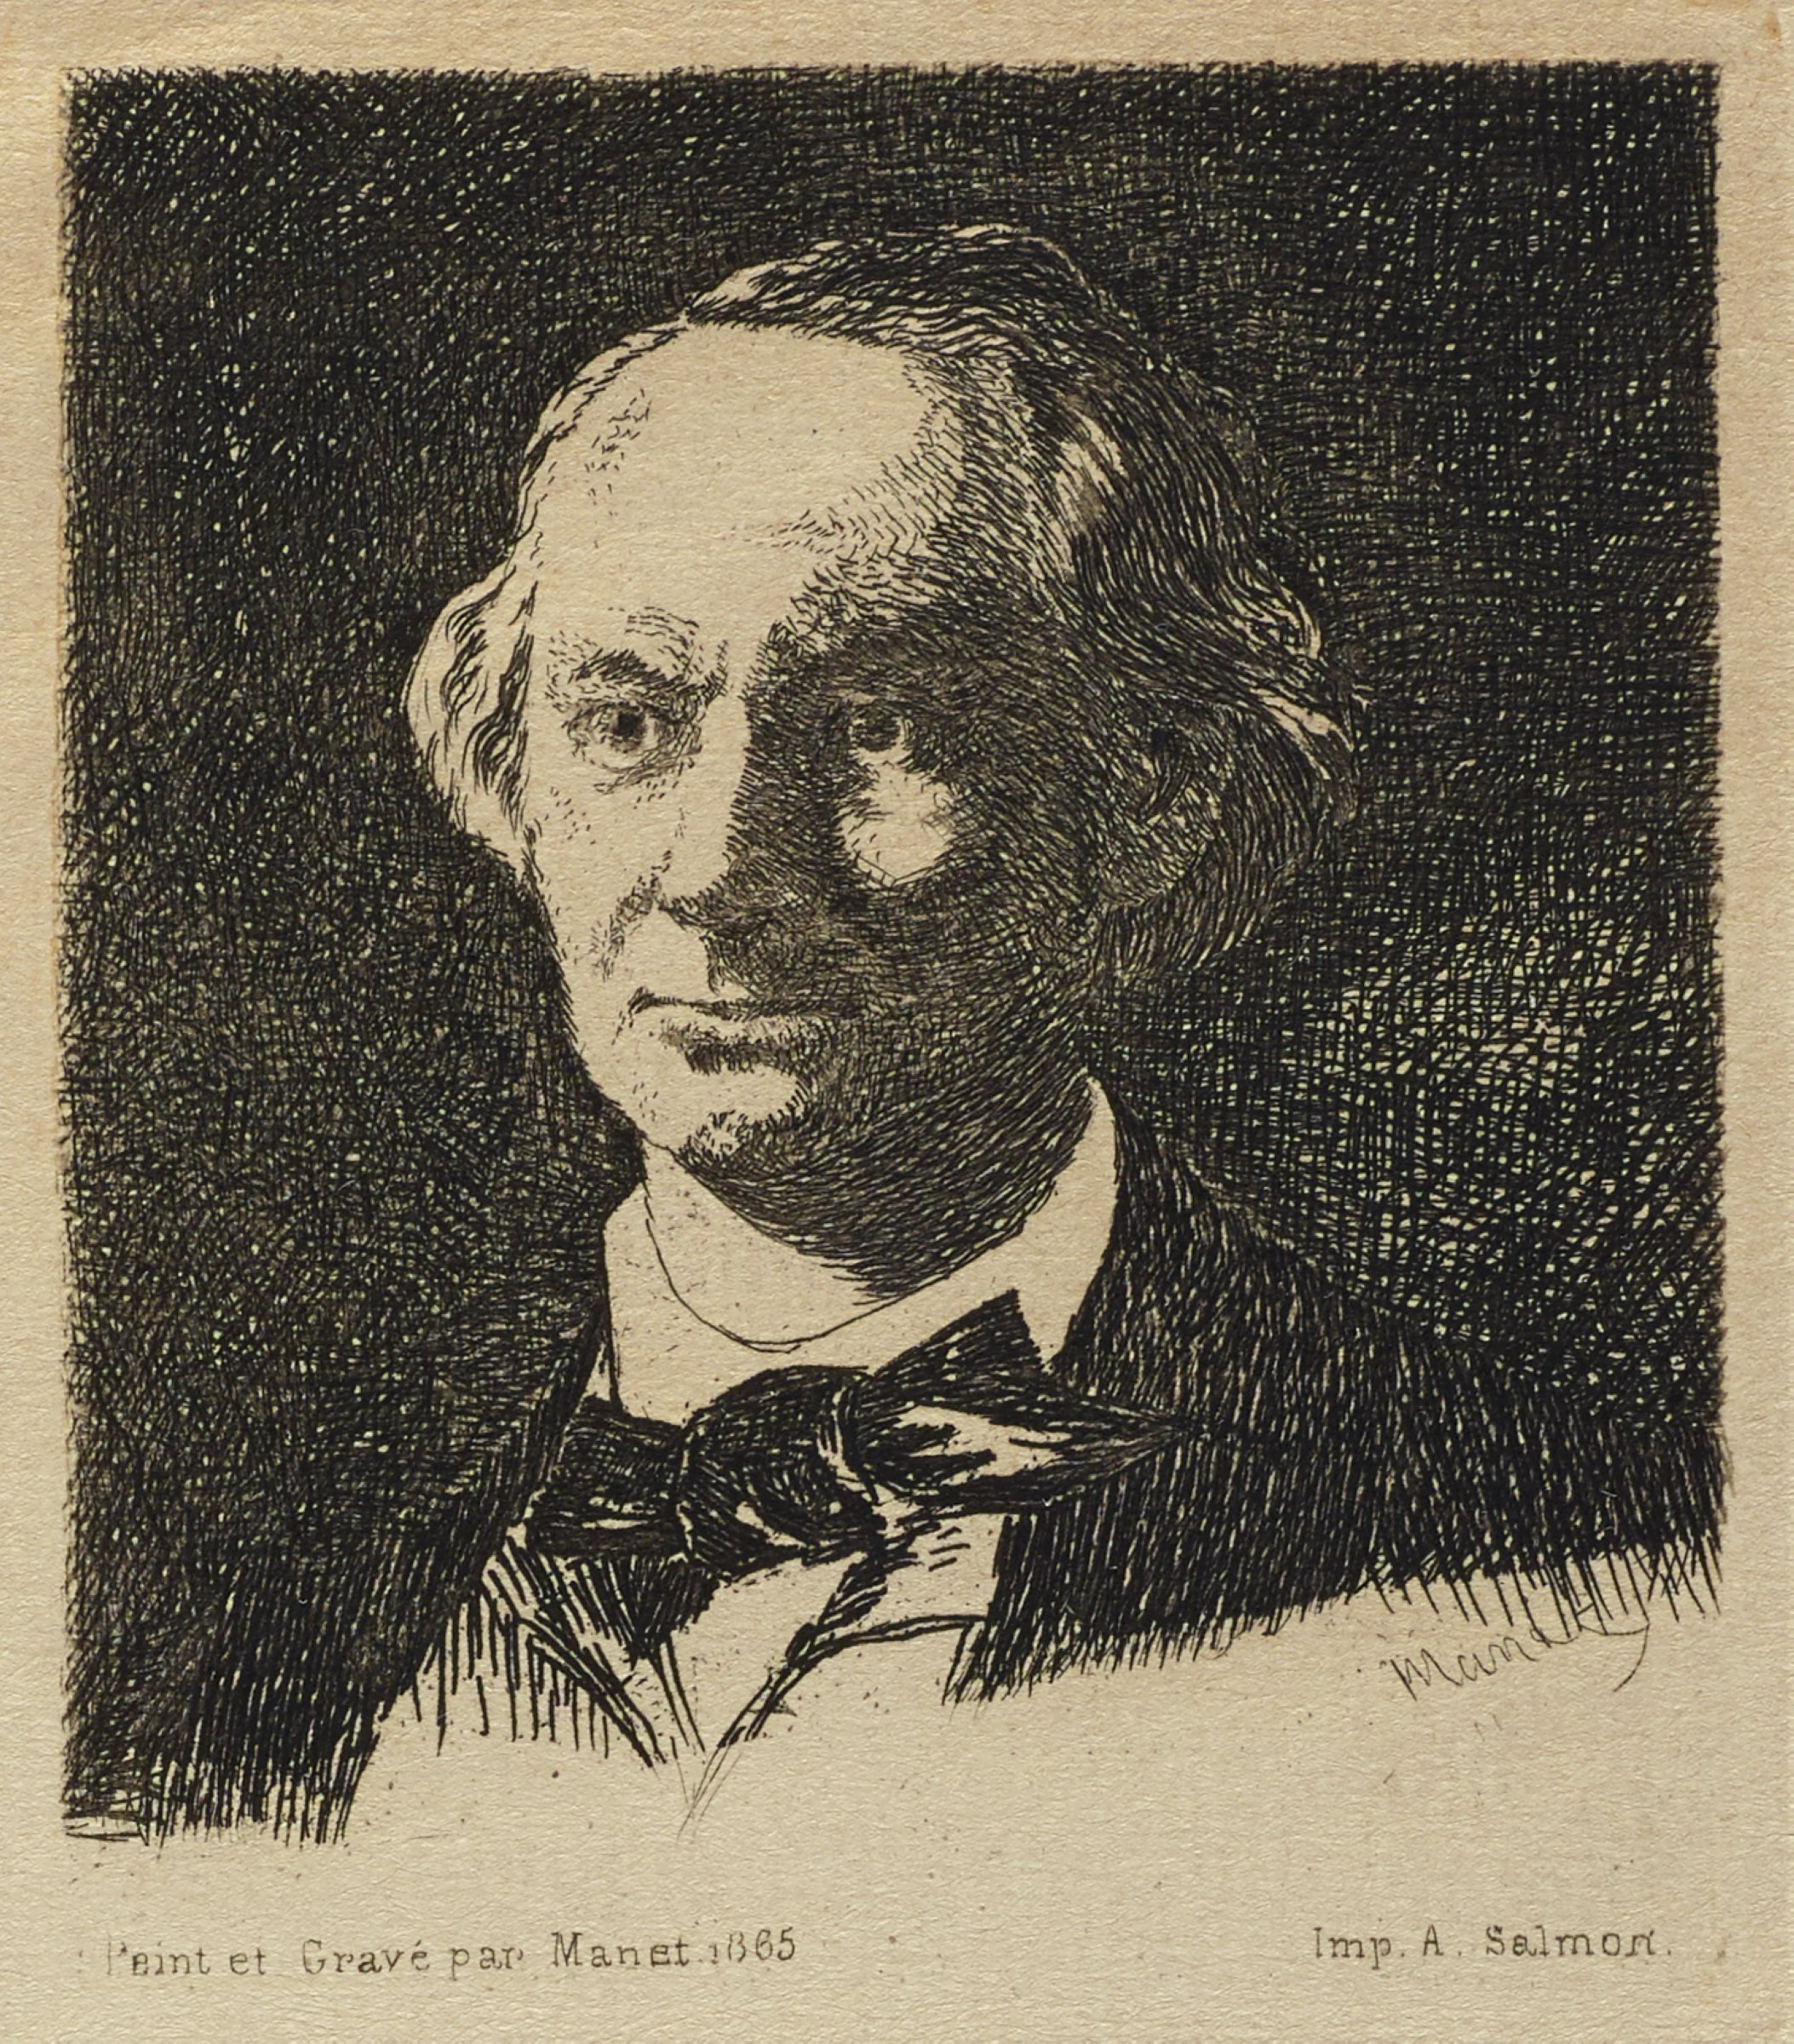 Bust portrait of Charles Baudelaire. This state was used as an illustration for the following book: Charles Asselineau, Charles Baudelaire: sa vie et son oeuvre, Paris 1869.